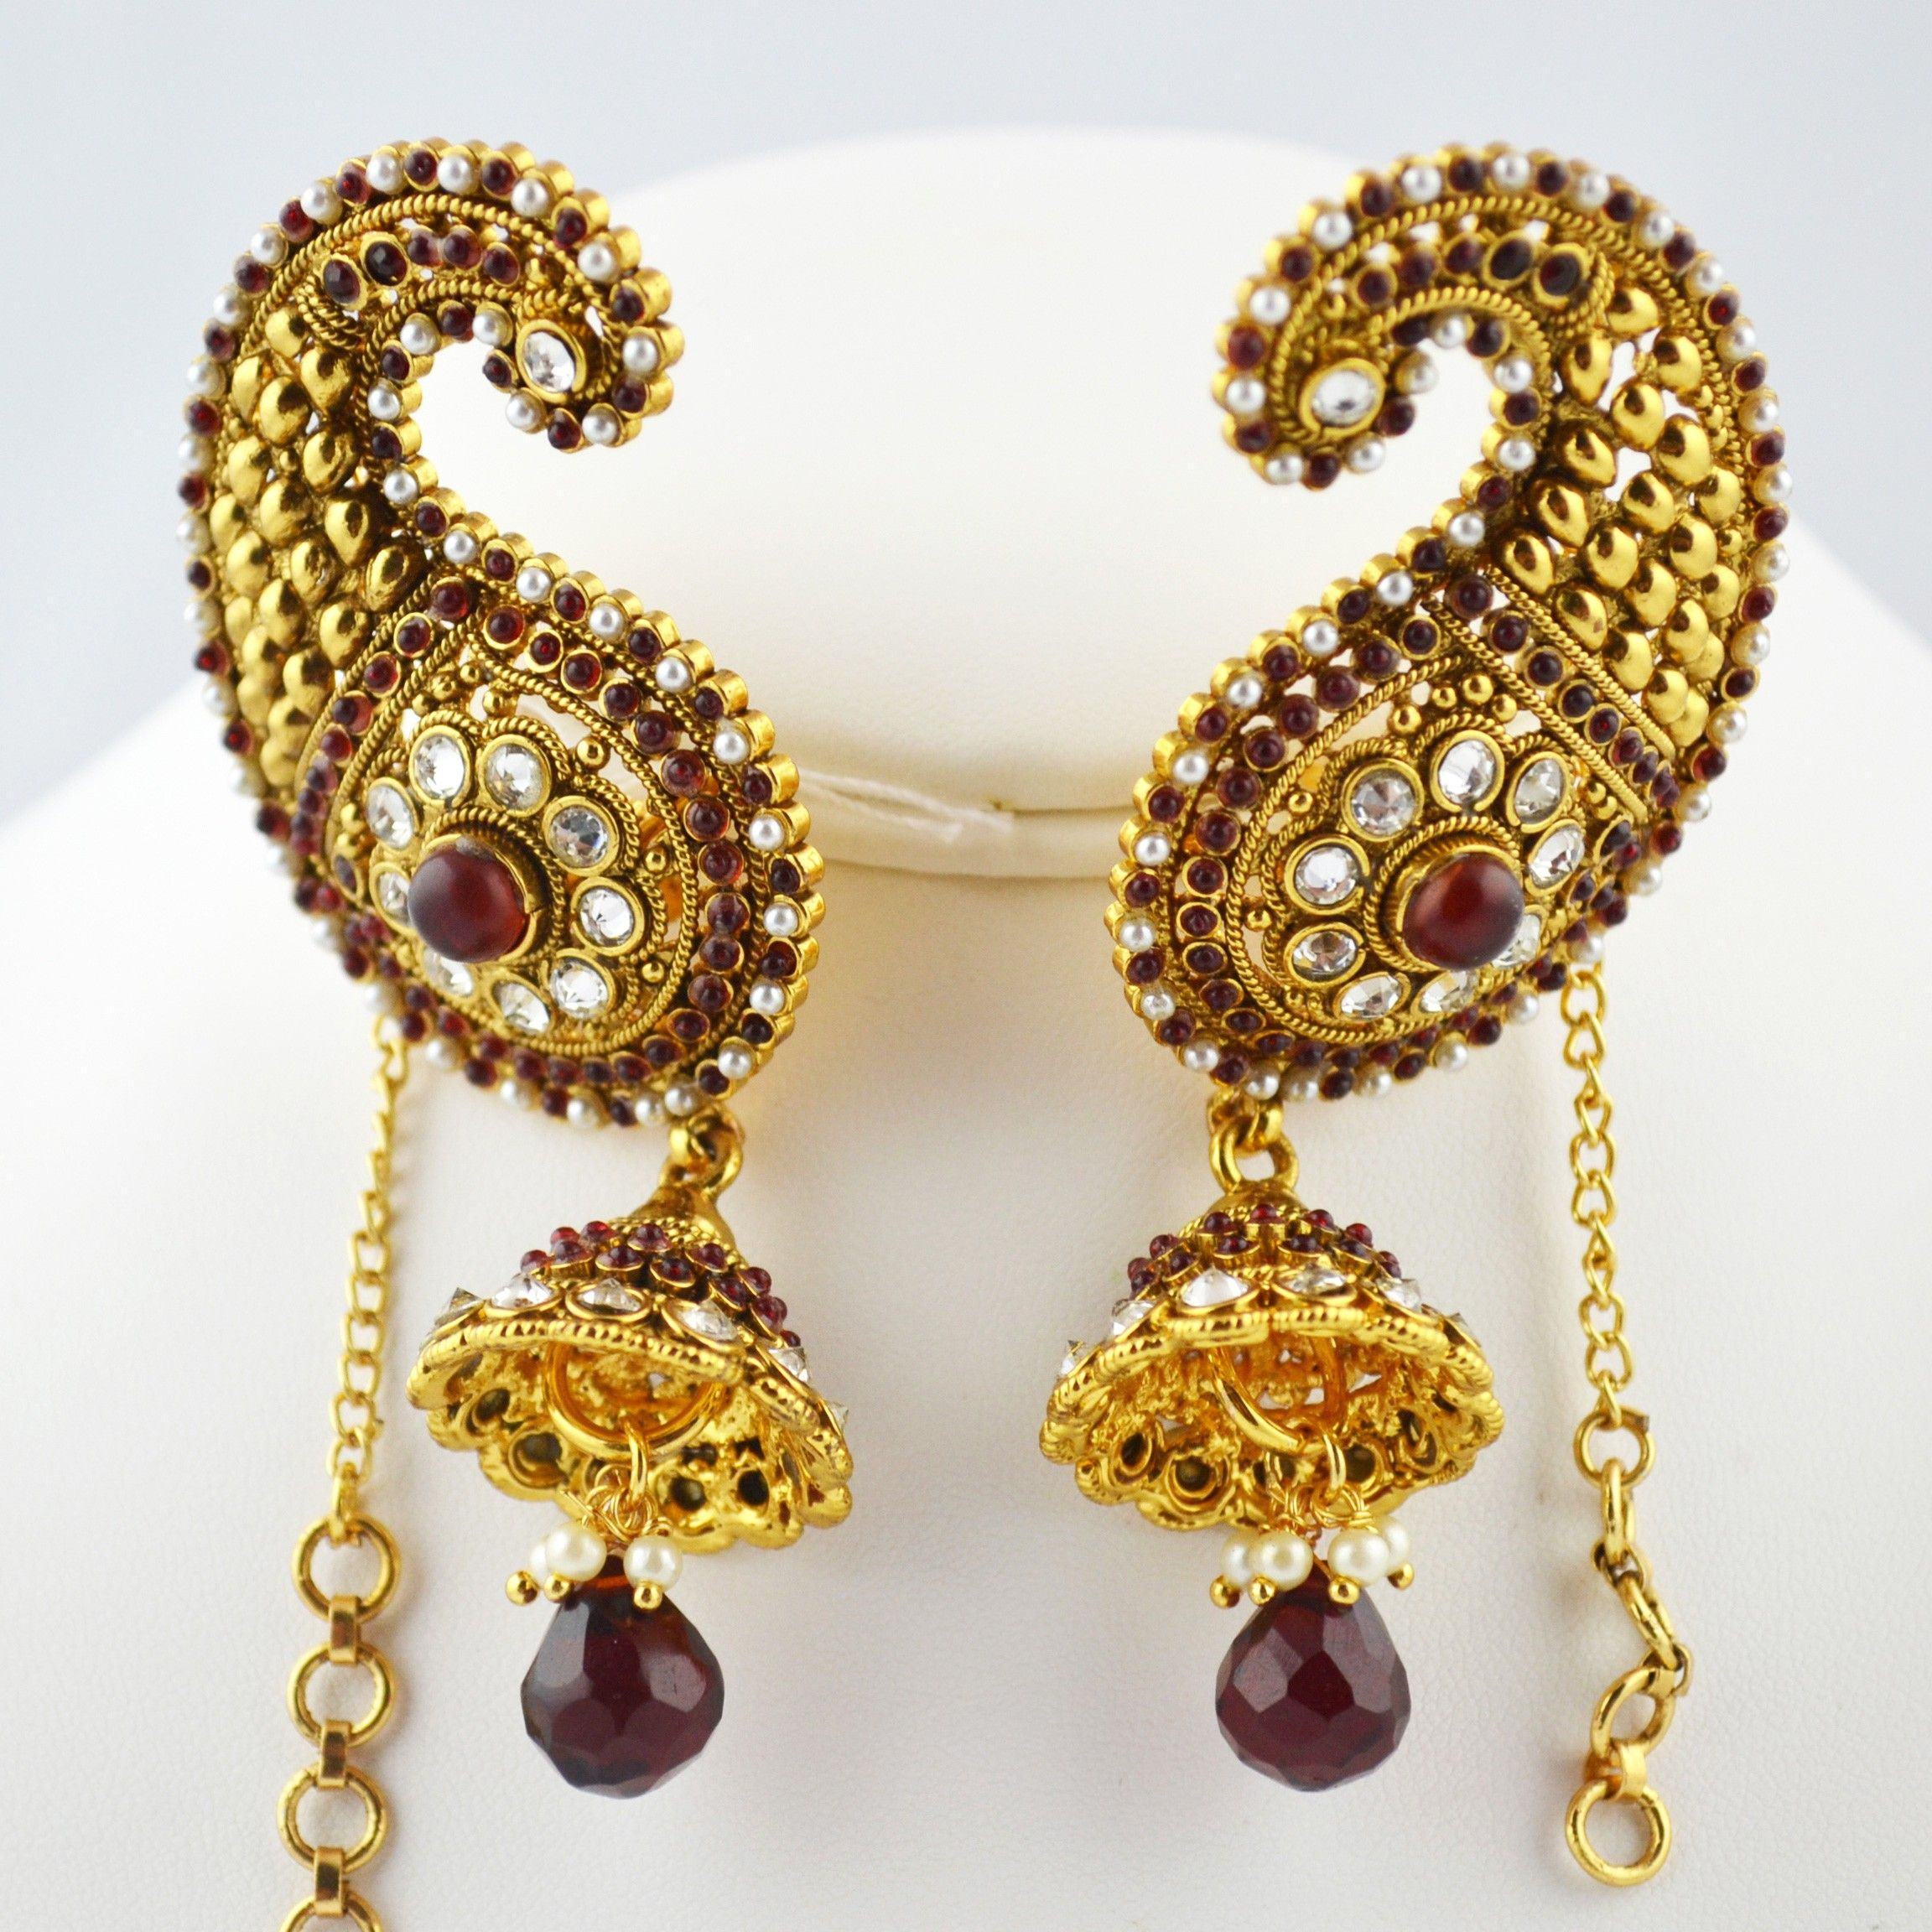 Indian Jewelry Store  Swasam: Full Ear Covering Medium Size Red And  Pearls